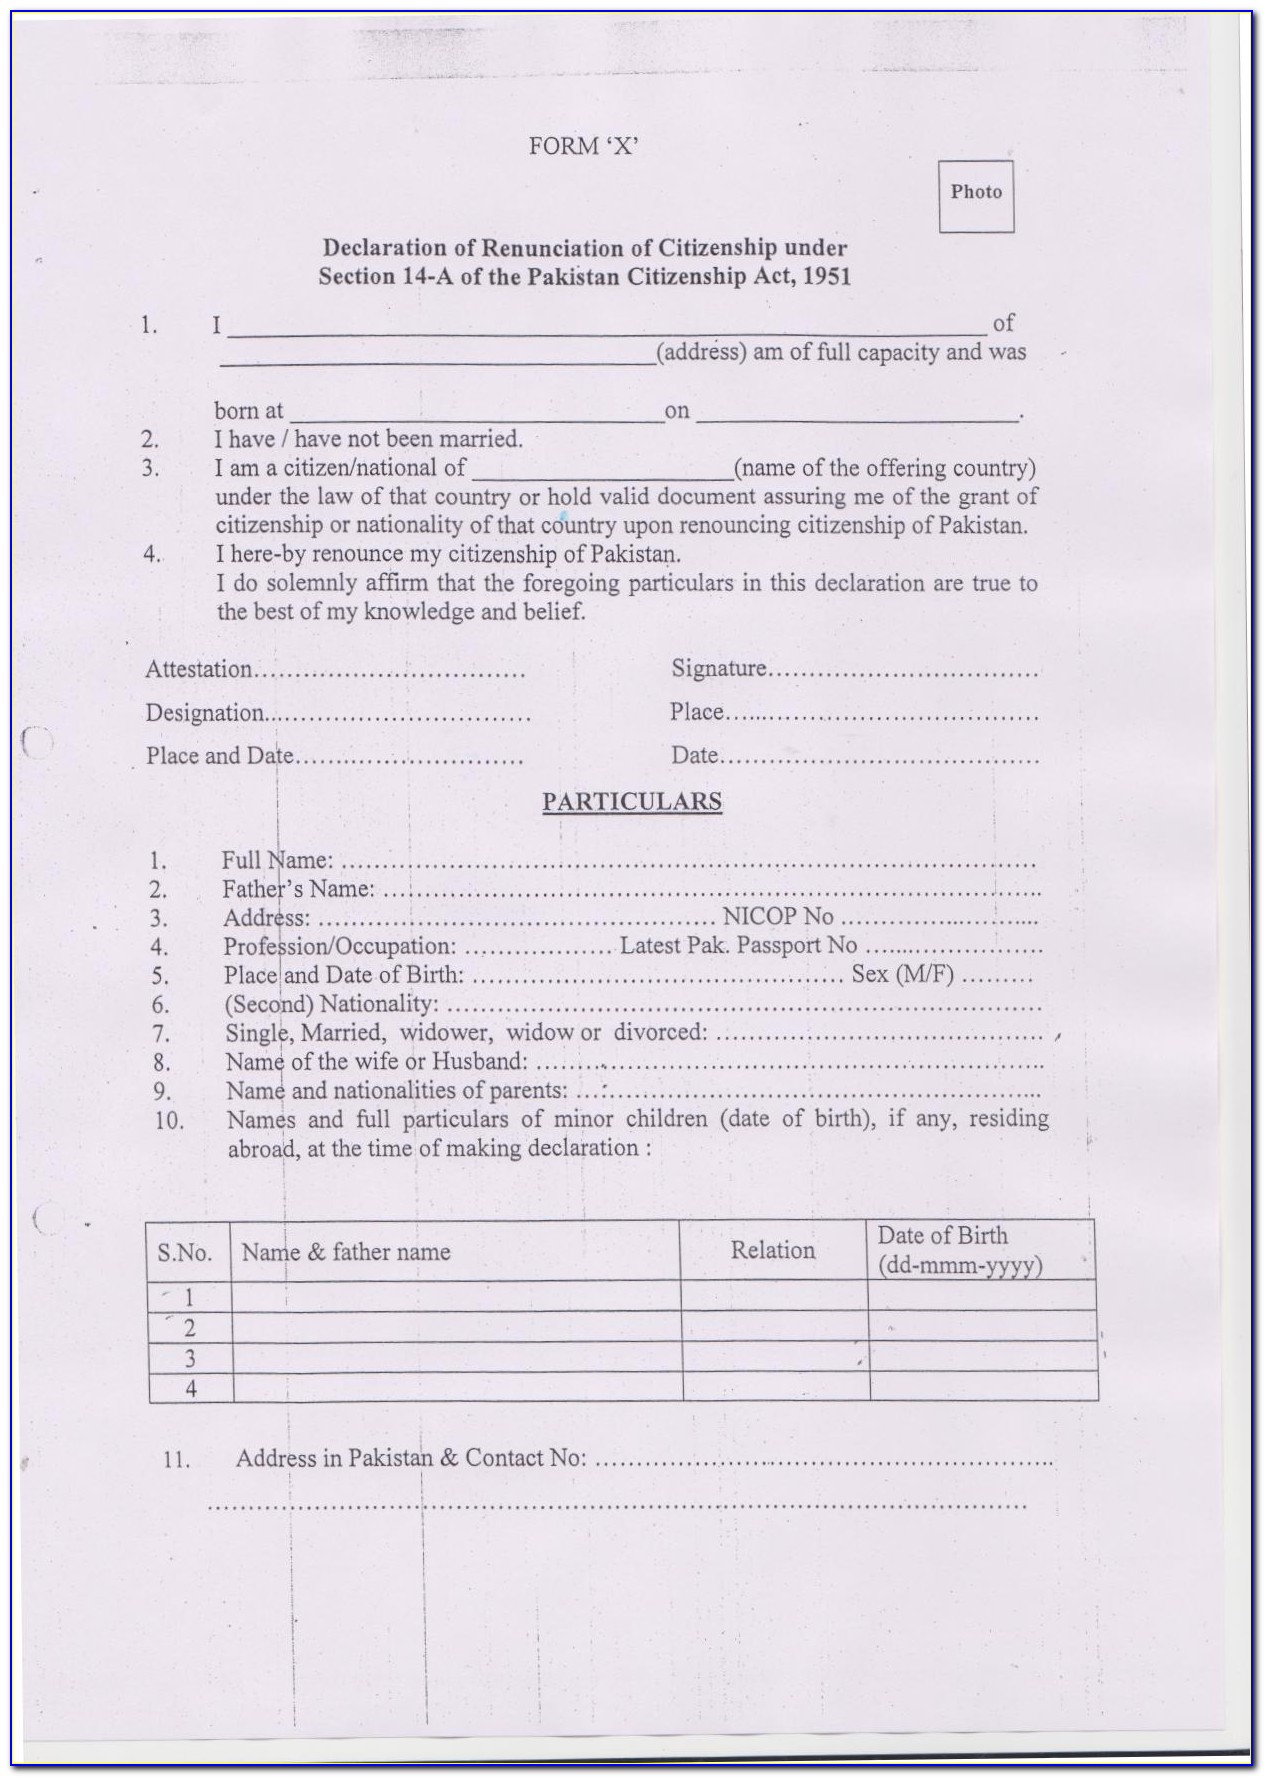 Indian Visa Requirement For Pakistani Nationals